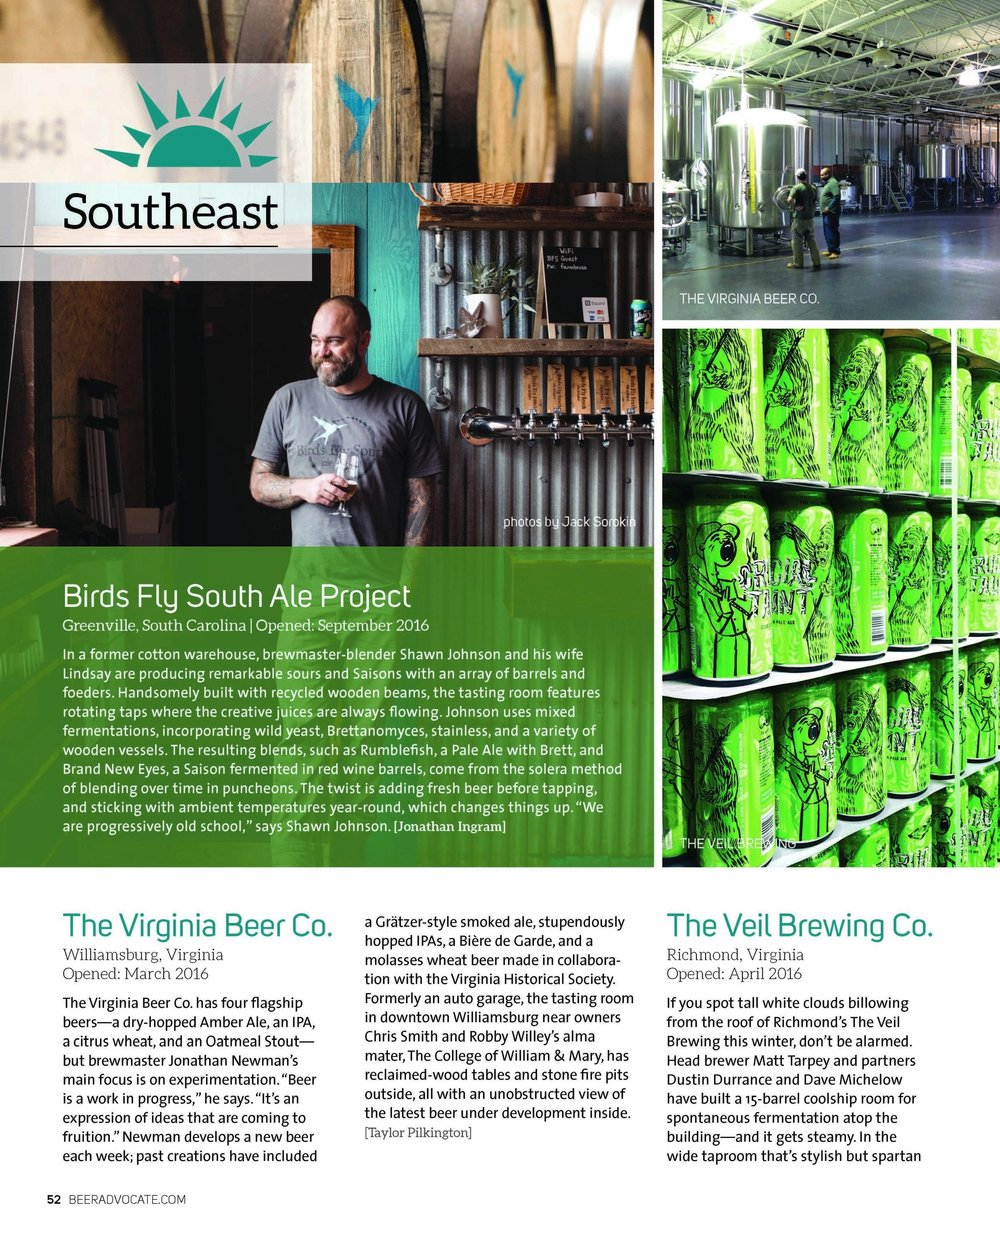 Beer Advocate Magazine Issue #120 2017 | Portrait of Shawn Johnson of Birds Fly South Ale Project BFS beer | Photography by Jack Sorokin